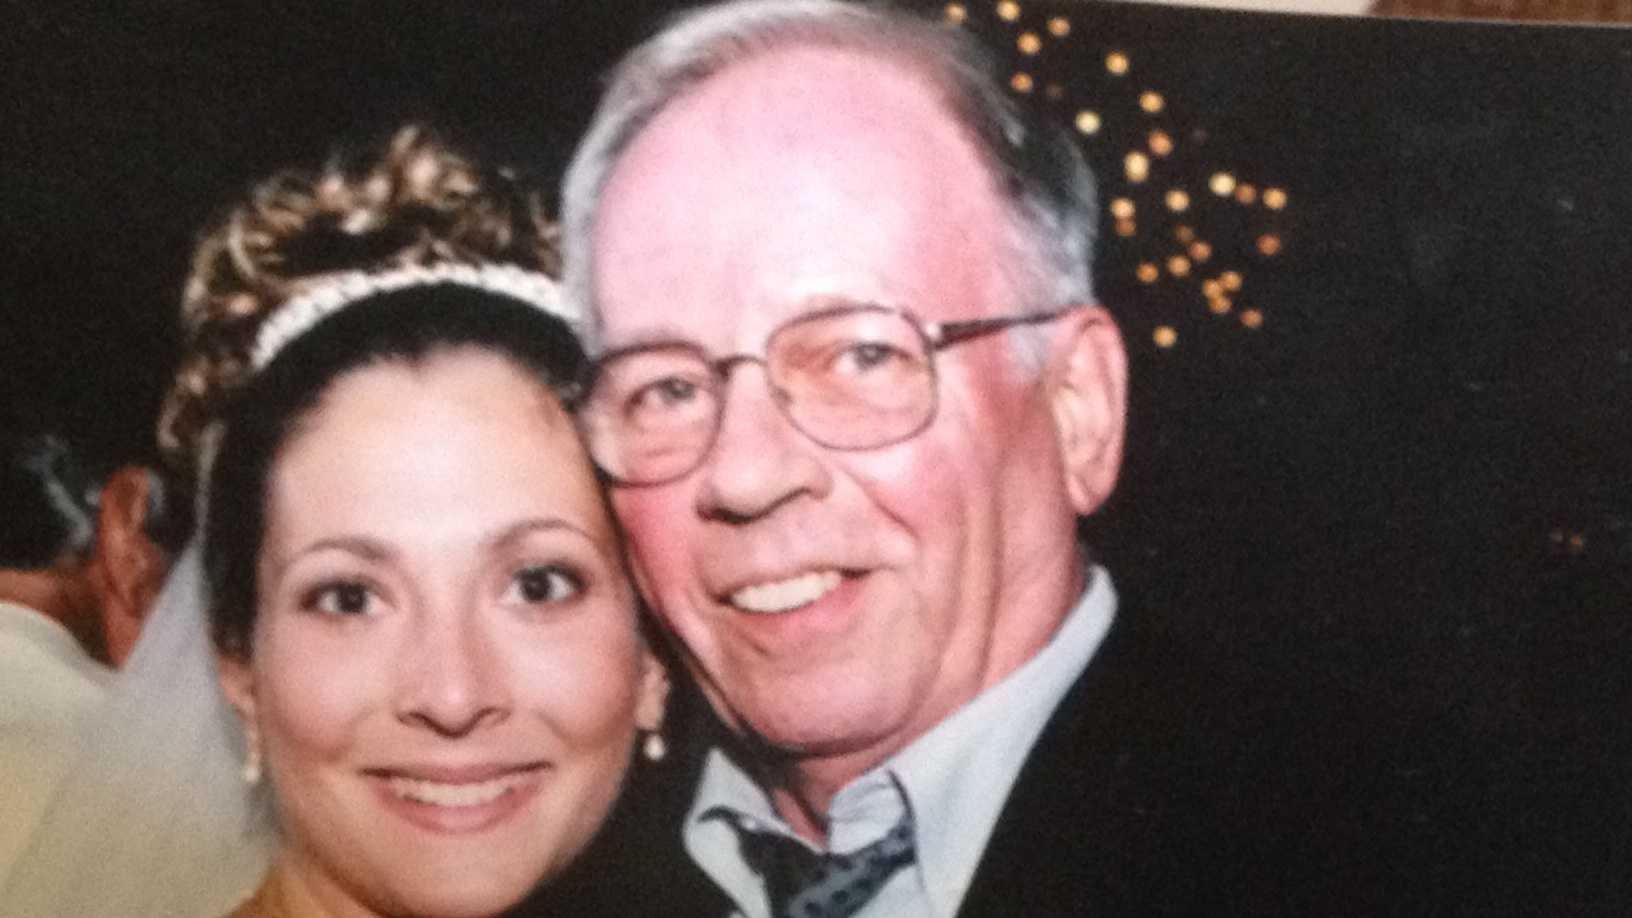 David Mack, seen here with his goddaughter a few years ago at her wedding.